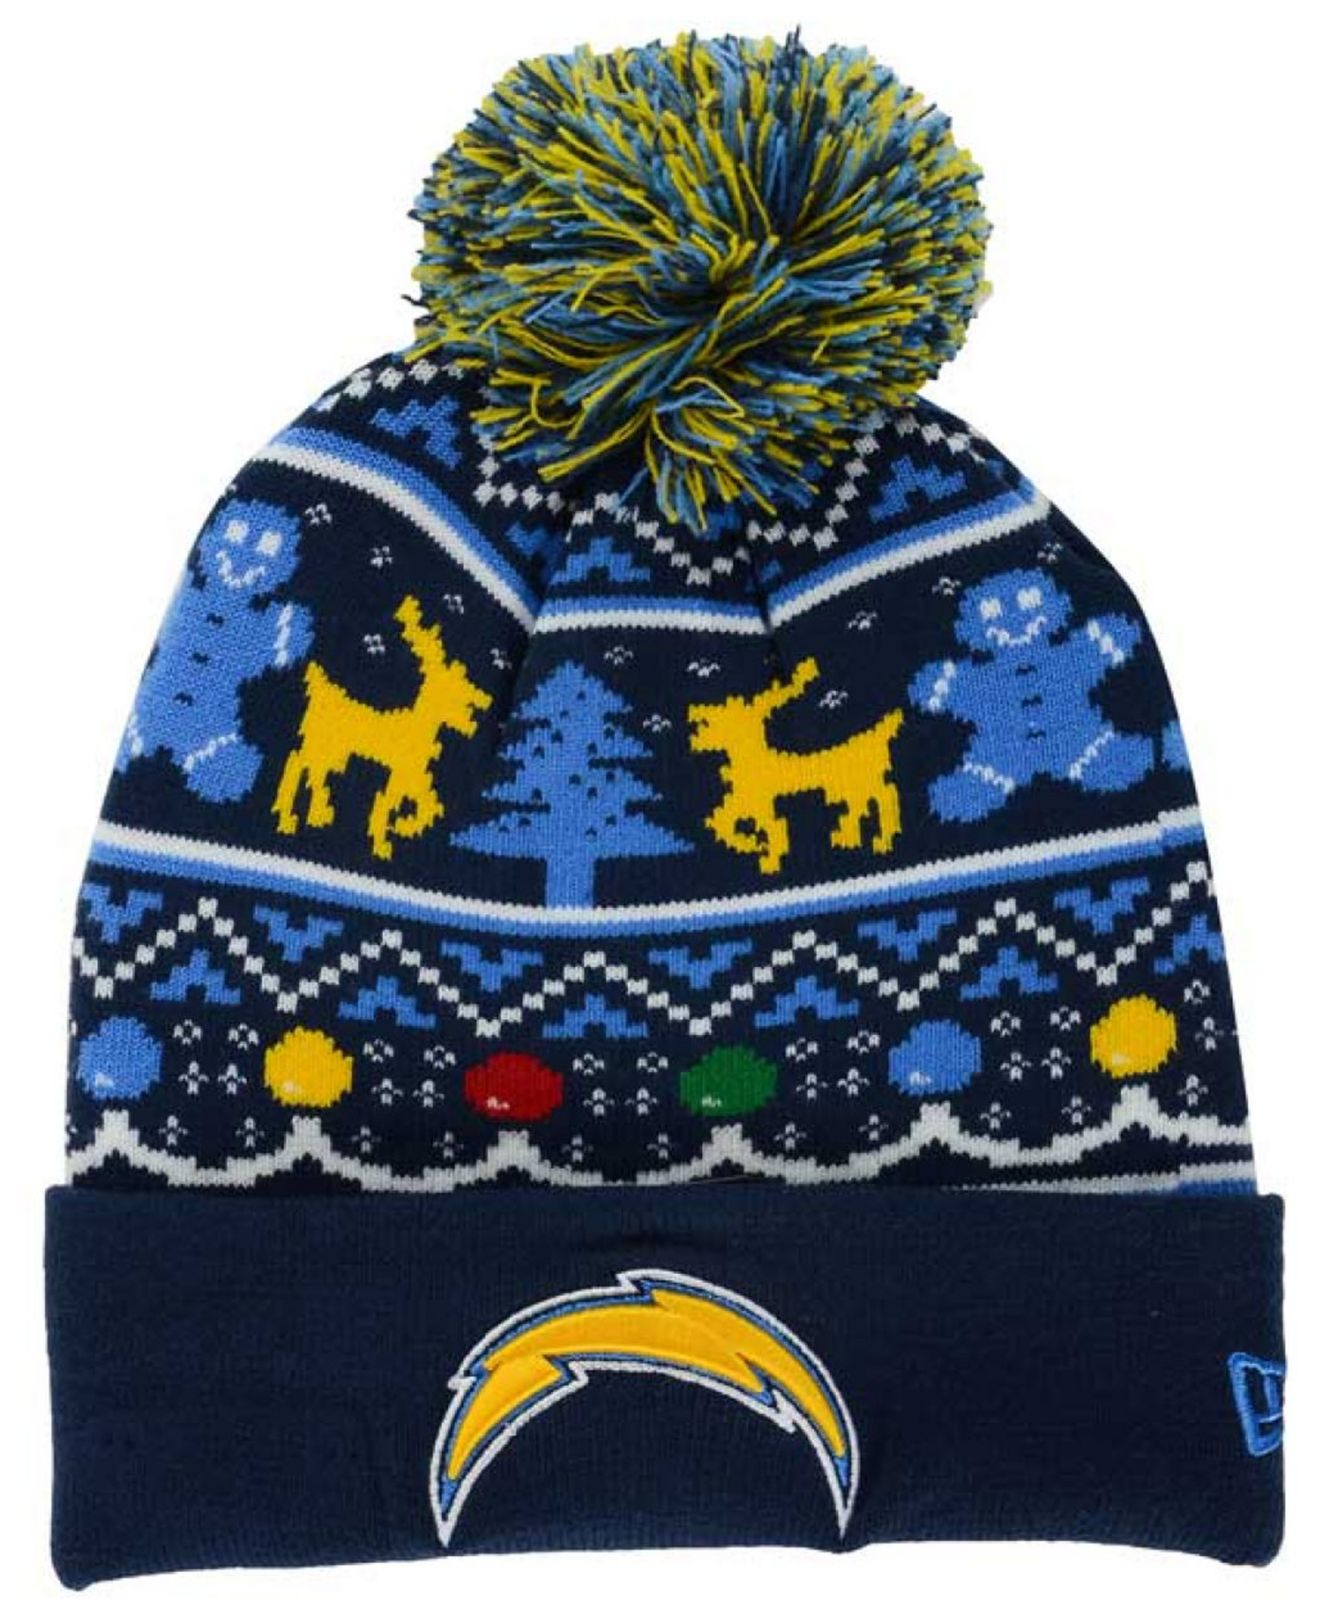 the best attitude b3abf a4ce4 KTZ Blue San Diego Chargers Christmas Sweater Pom Knit Hat for men